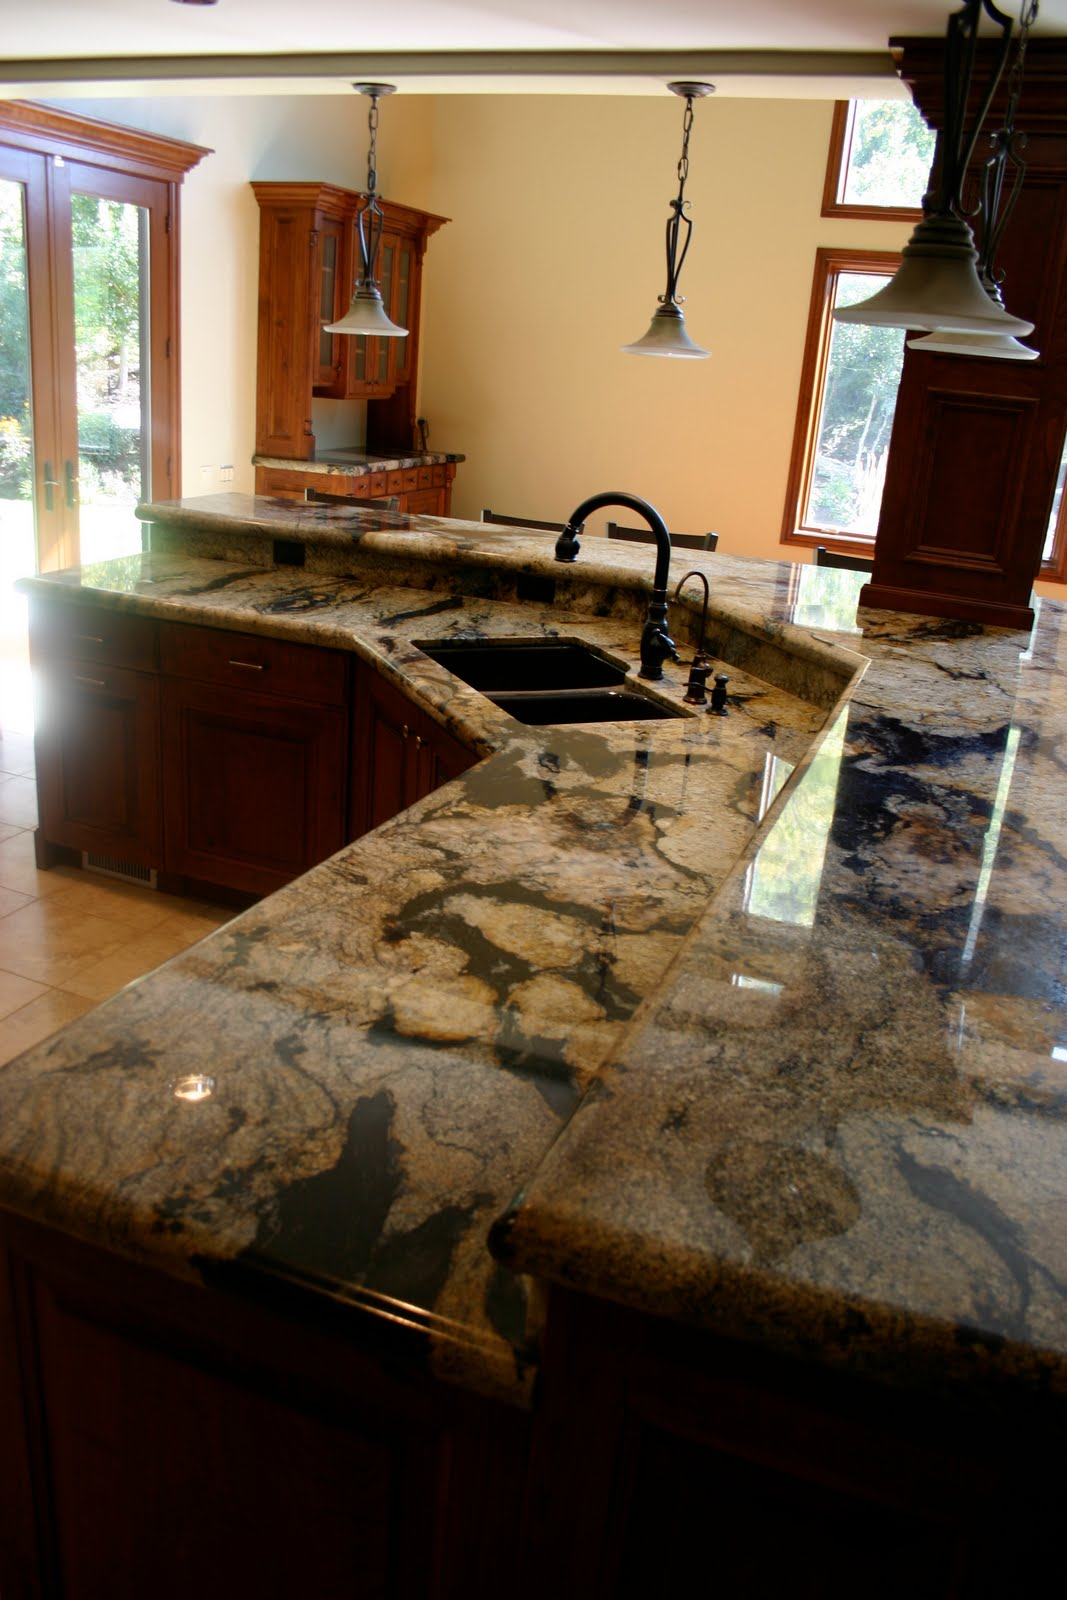 The granite gurus spectrus granite kitchen from mgs by design - Granite kitchen design ...